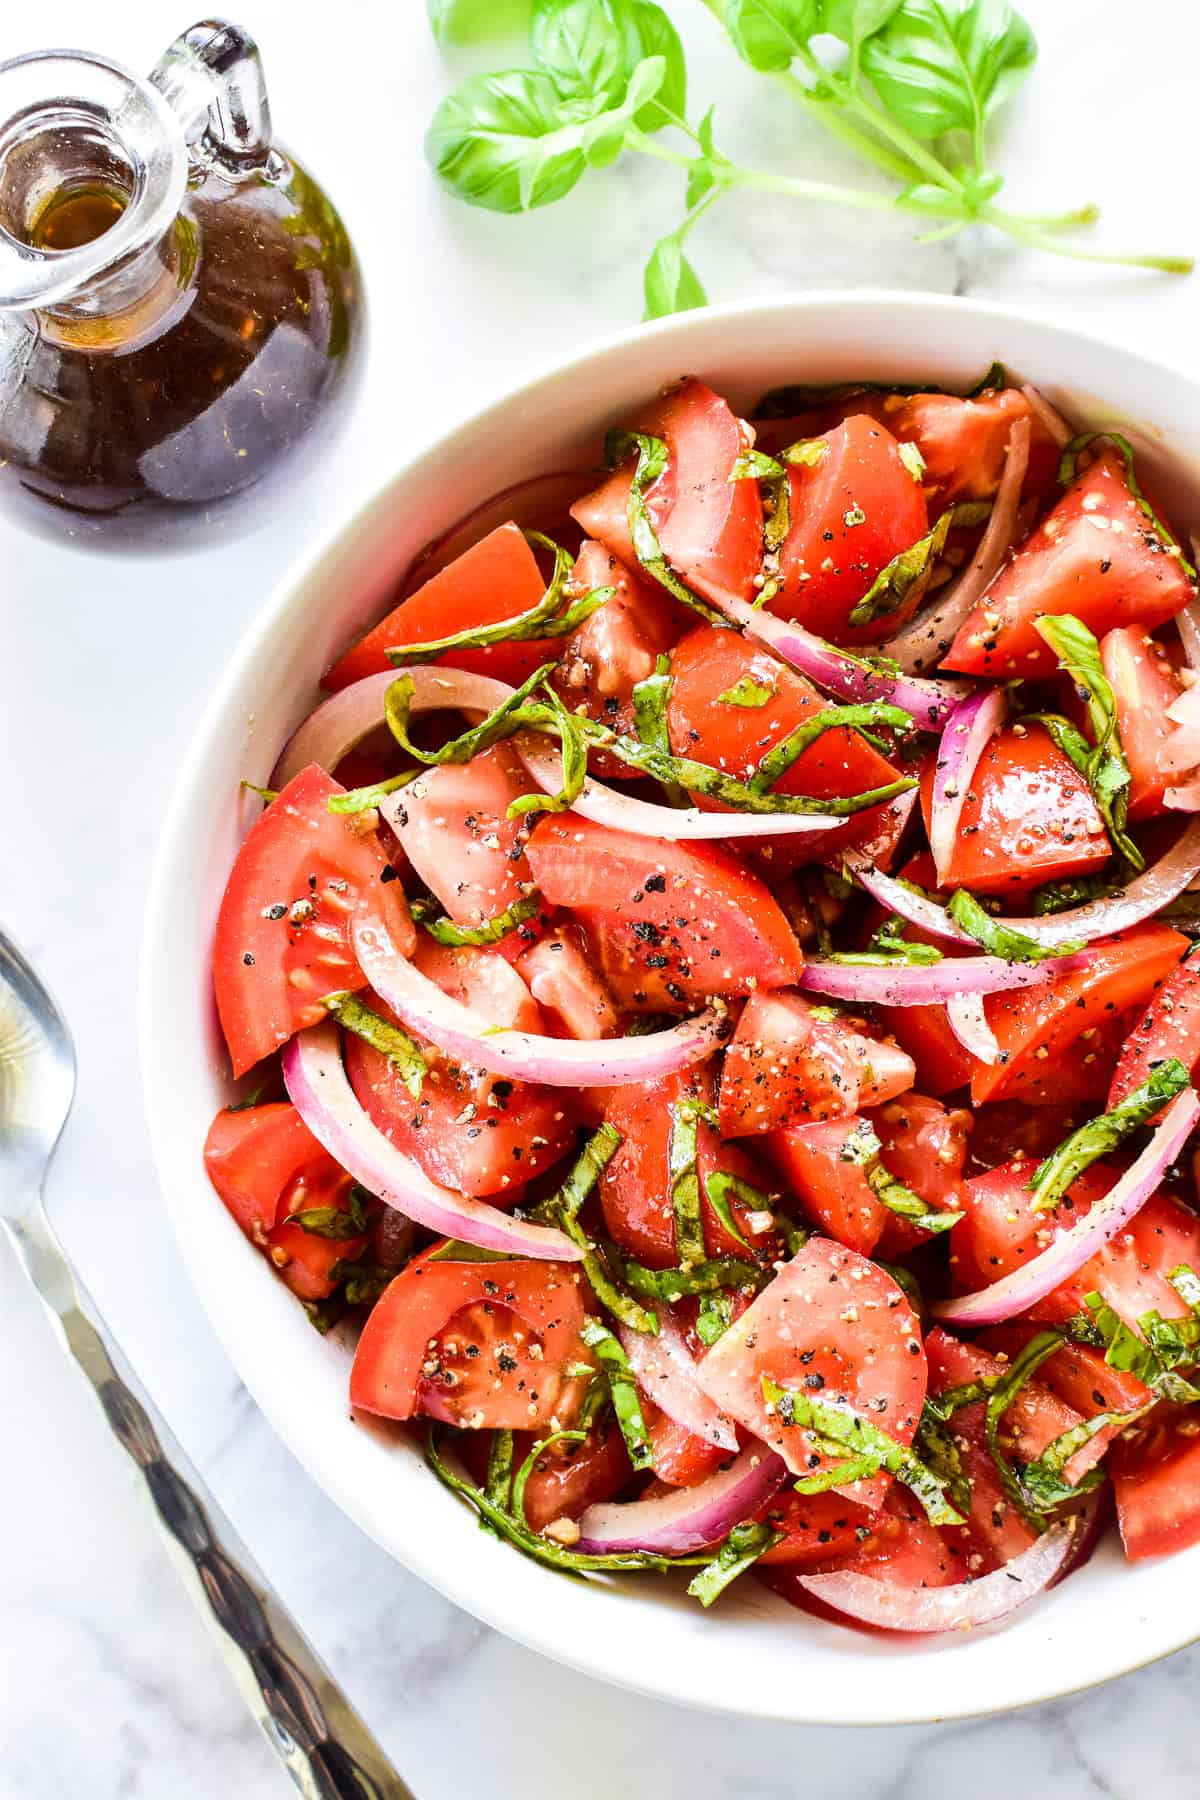 Overhead shot of Tomato Salad in a white bowl